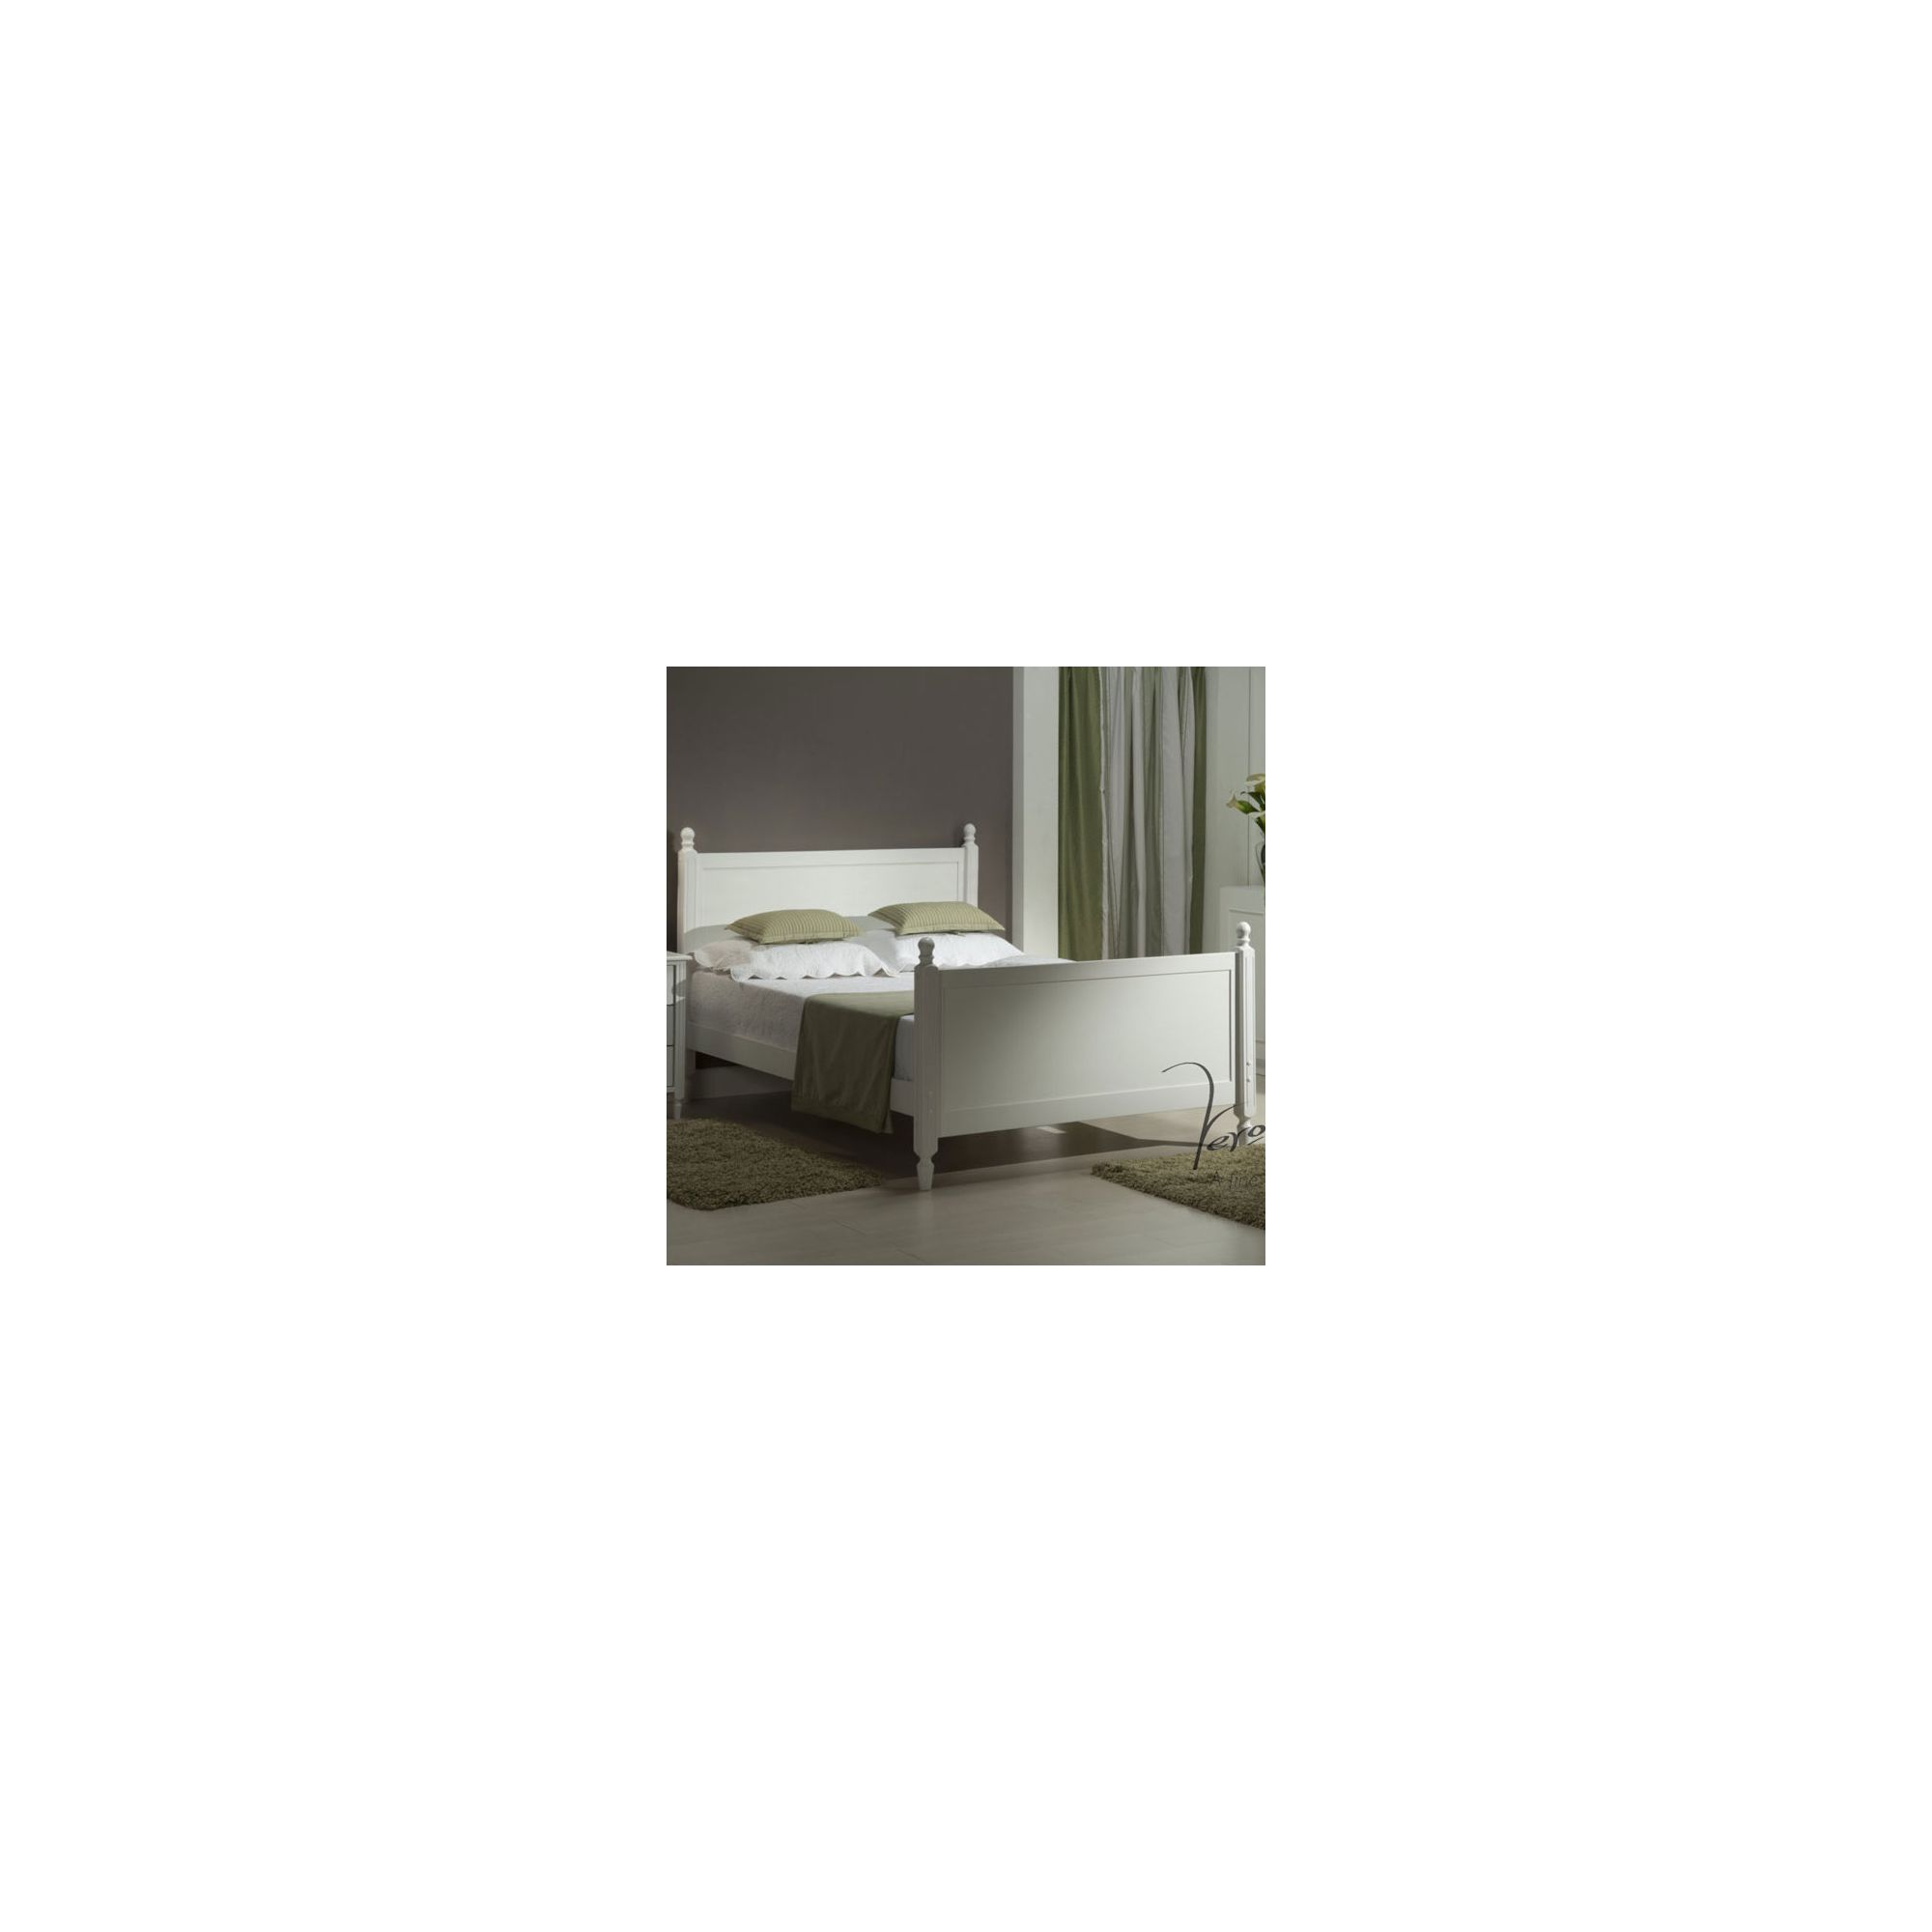 Verona Florence Bedframe - Double at Tesco Direct